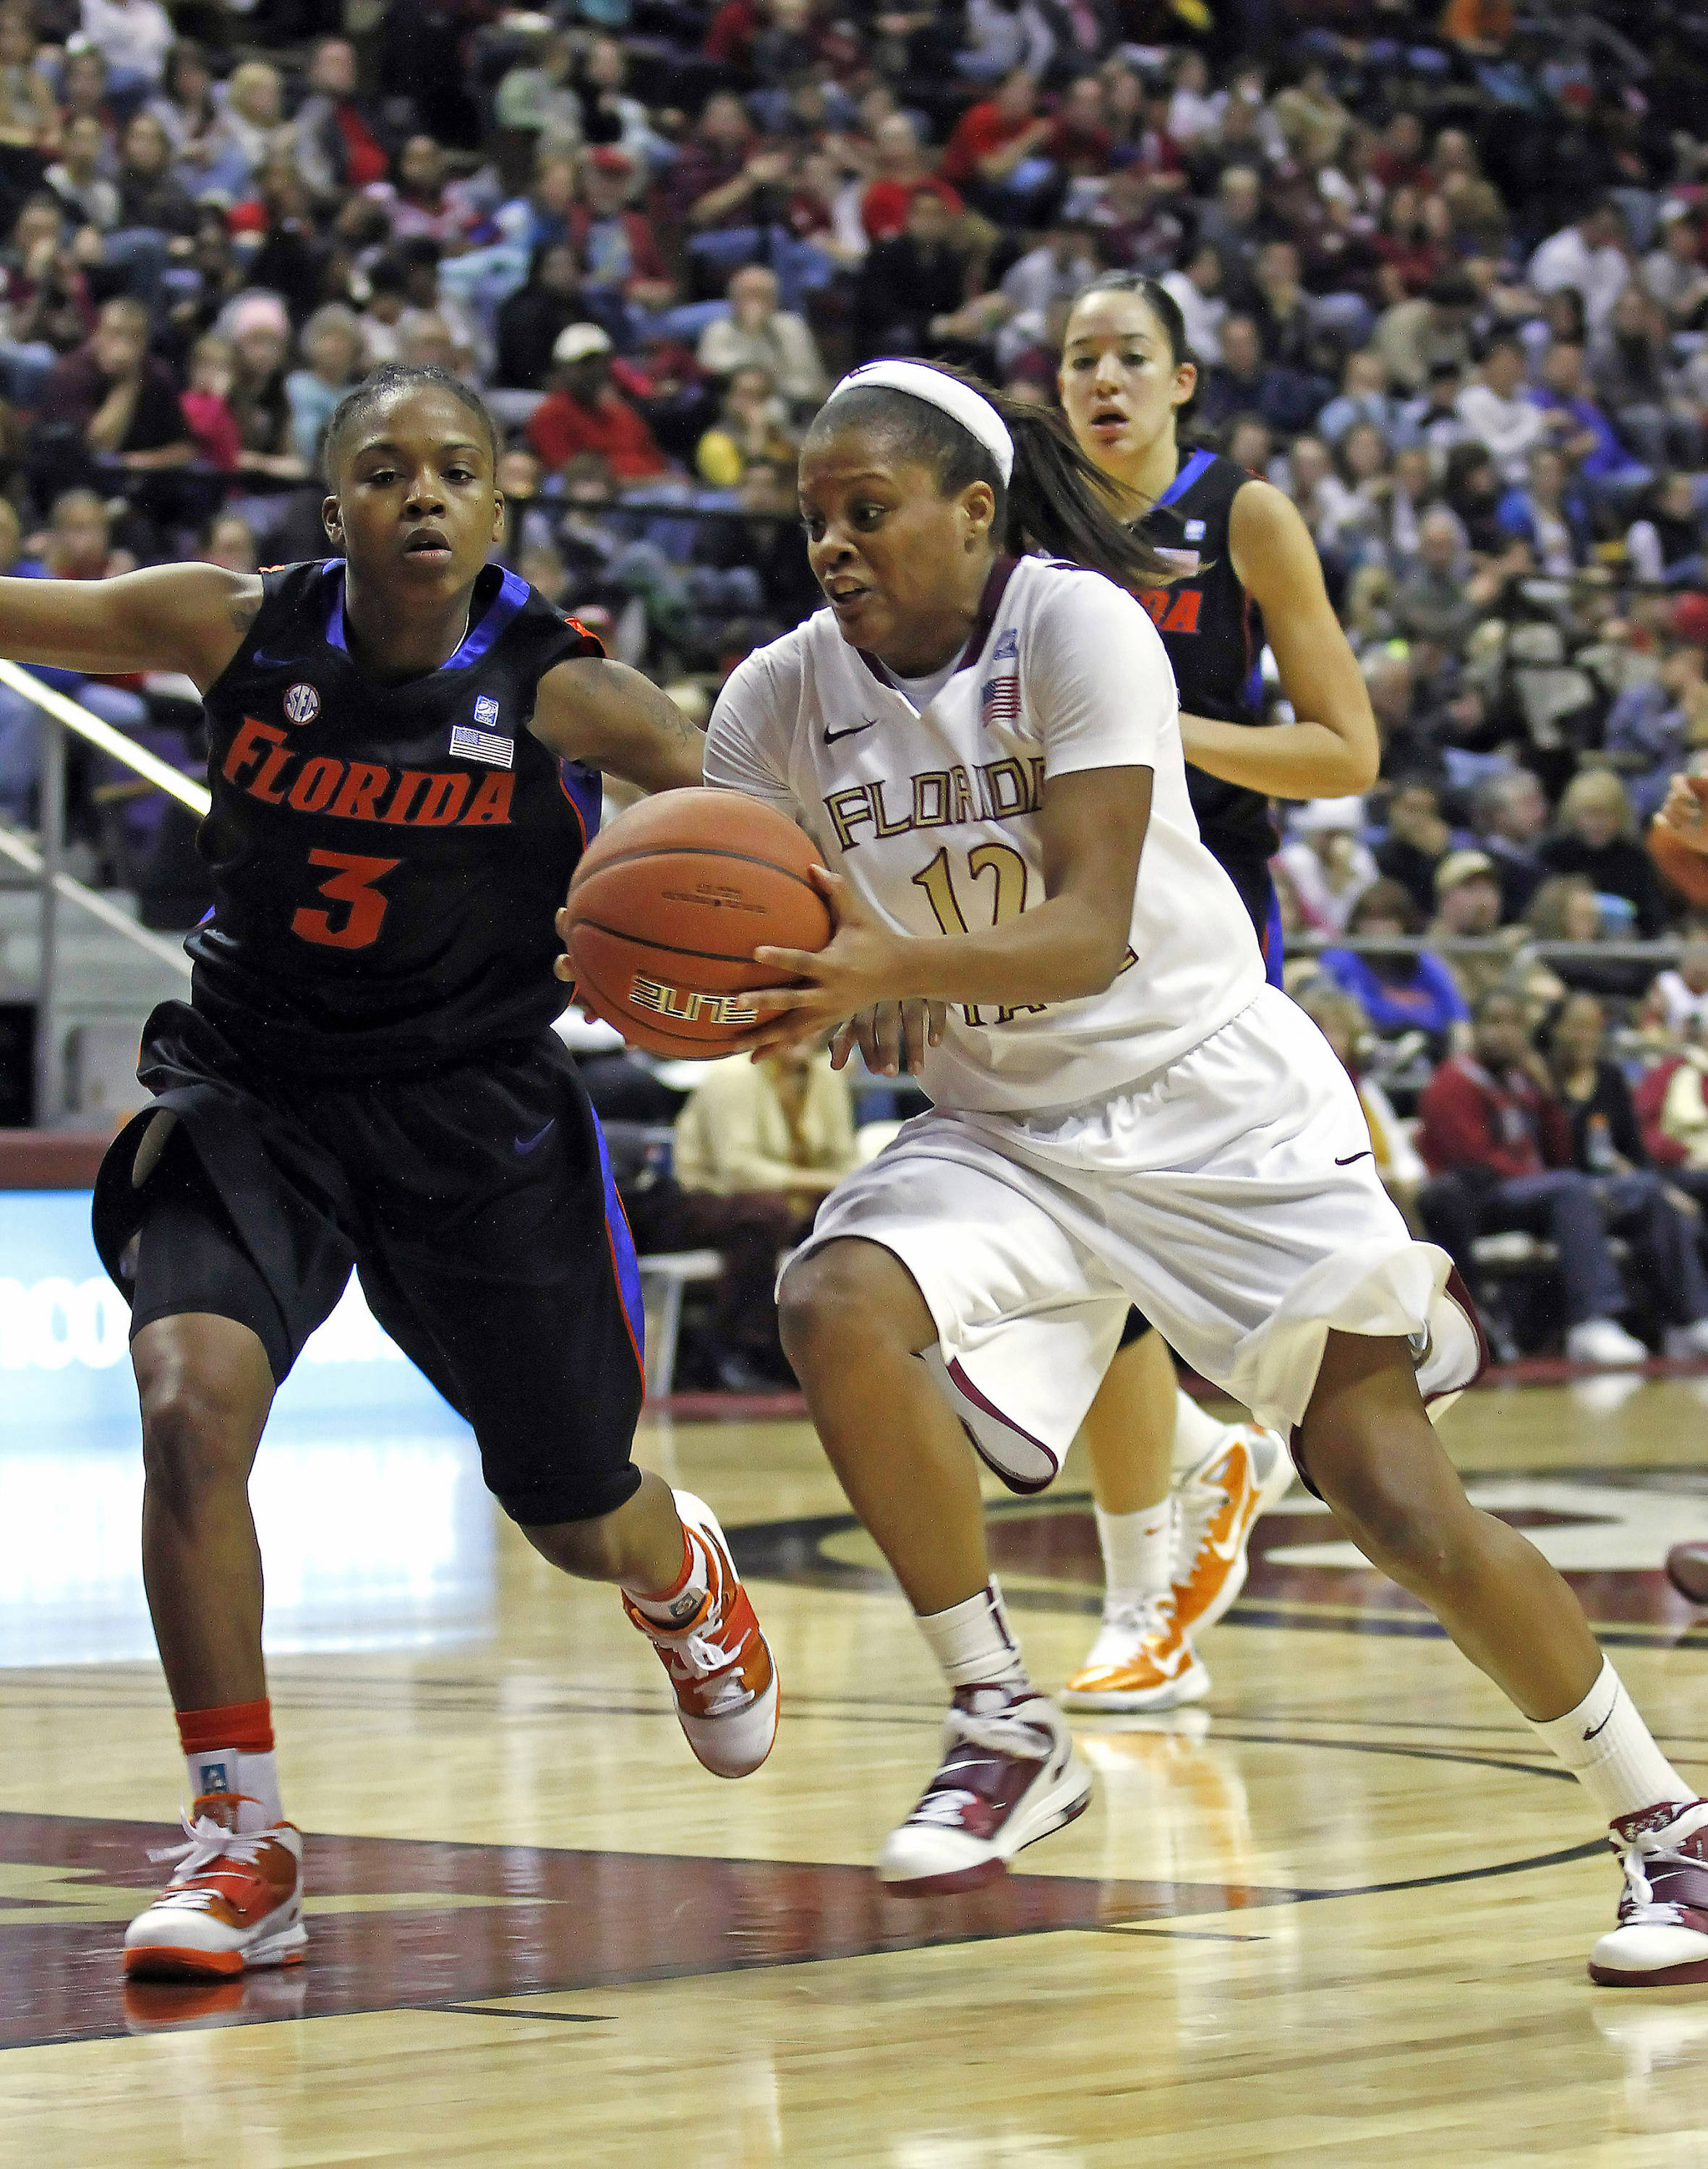 FSU vs Florida 12/28/10 - Courtney Ward (12)#$%^Photo by Steve Musco